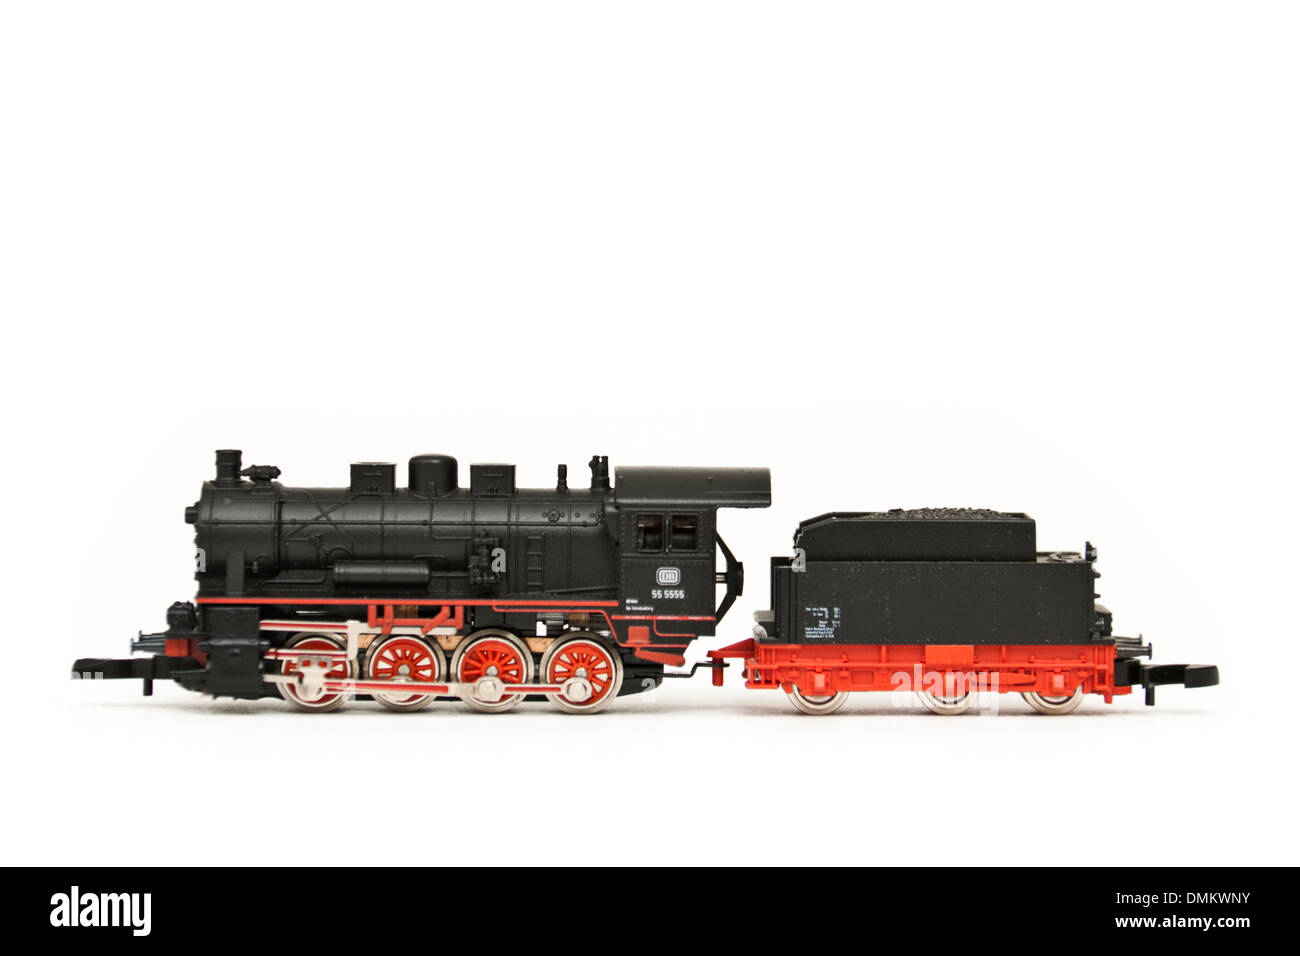 Marklin Z-scale mini-club 88980 Deutsche Bahn Class 5525 freight steam locomotive and tender from 2001 - Stock Image